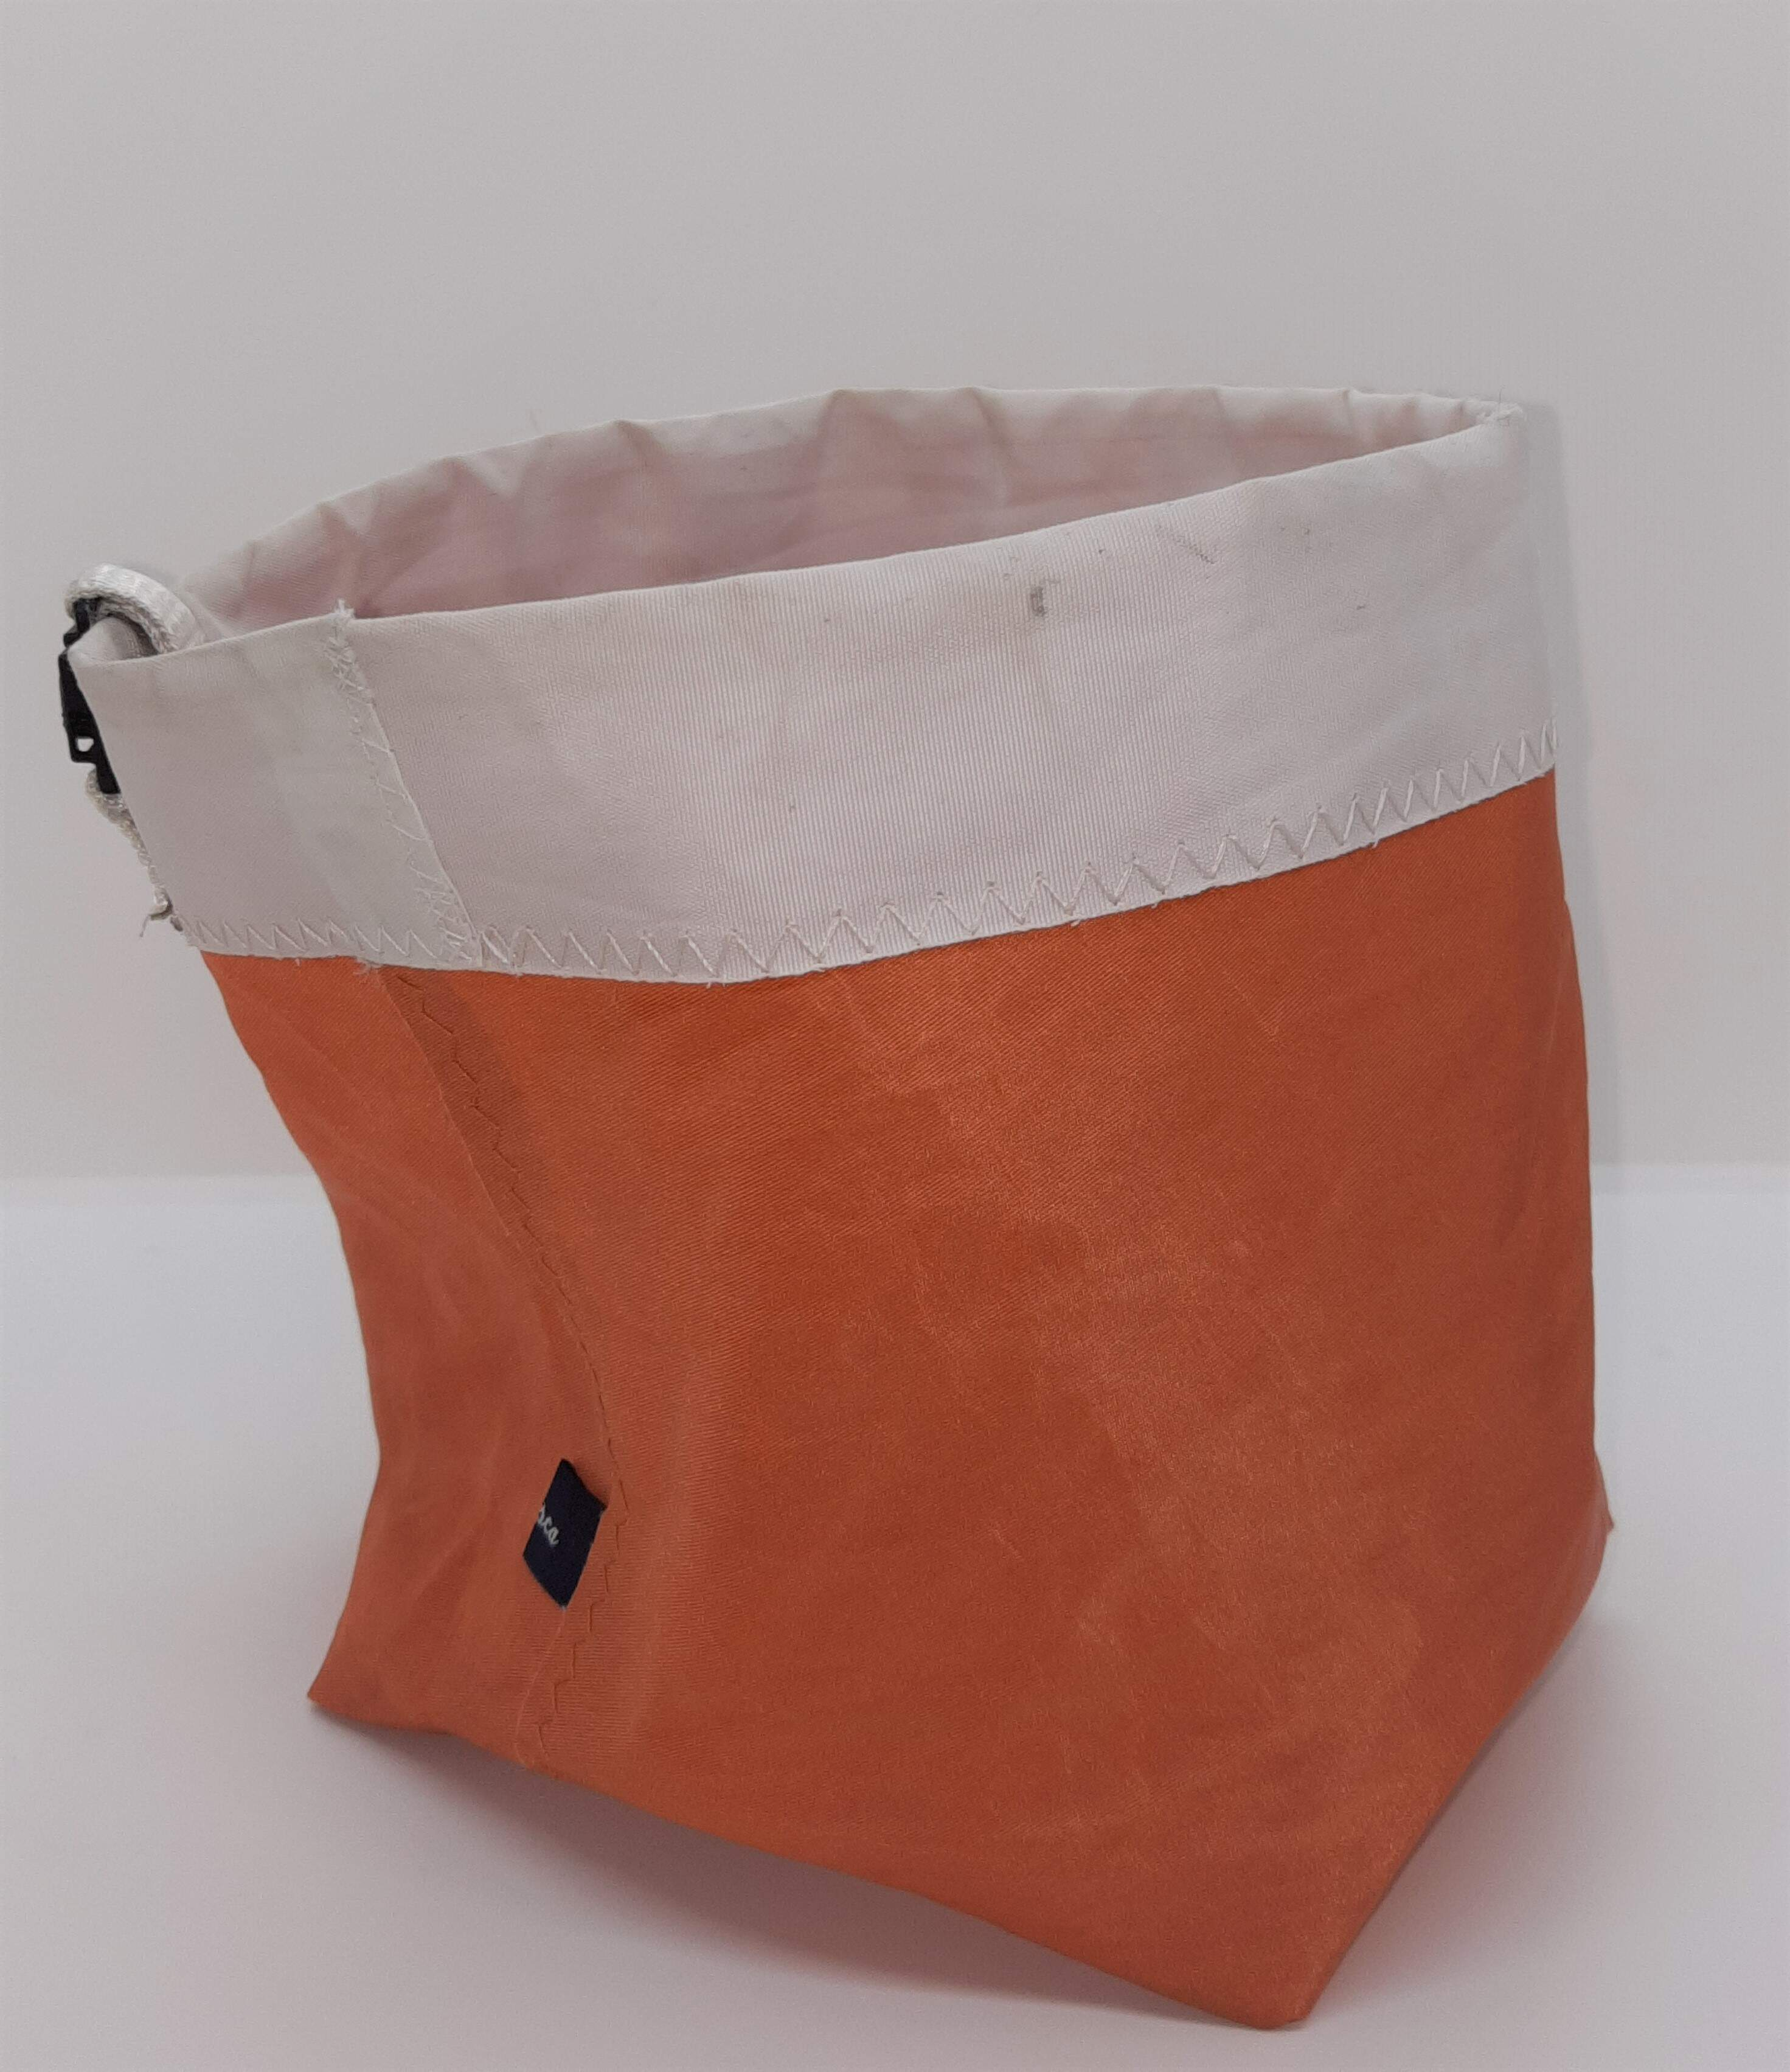 Storage bag made from Squib sail